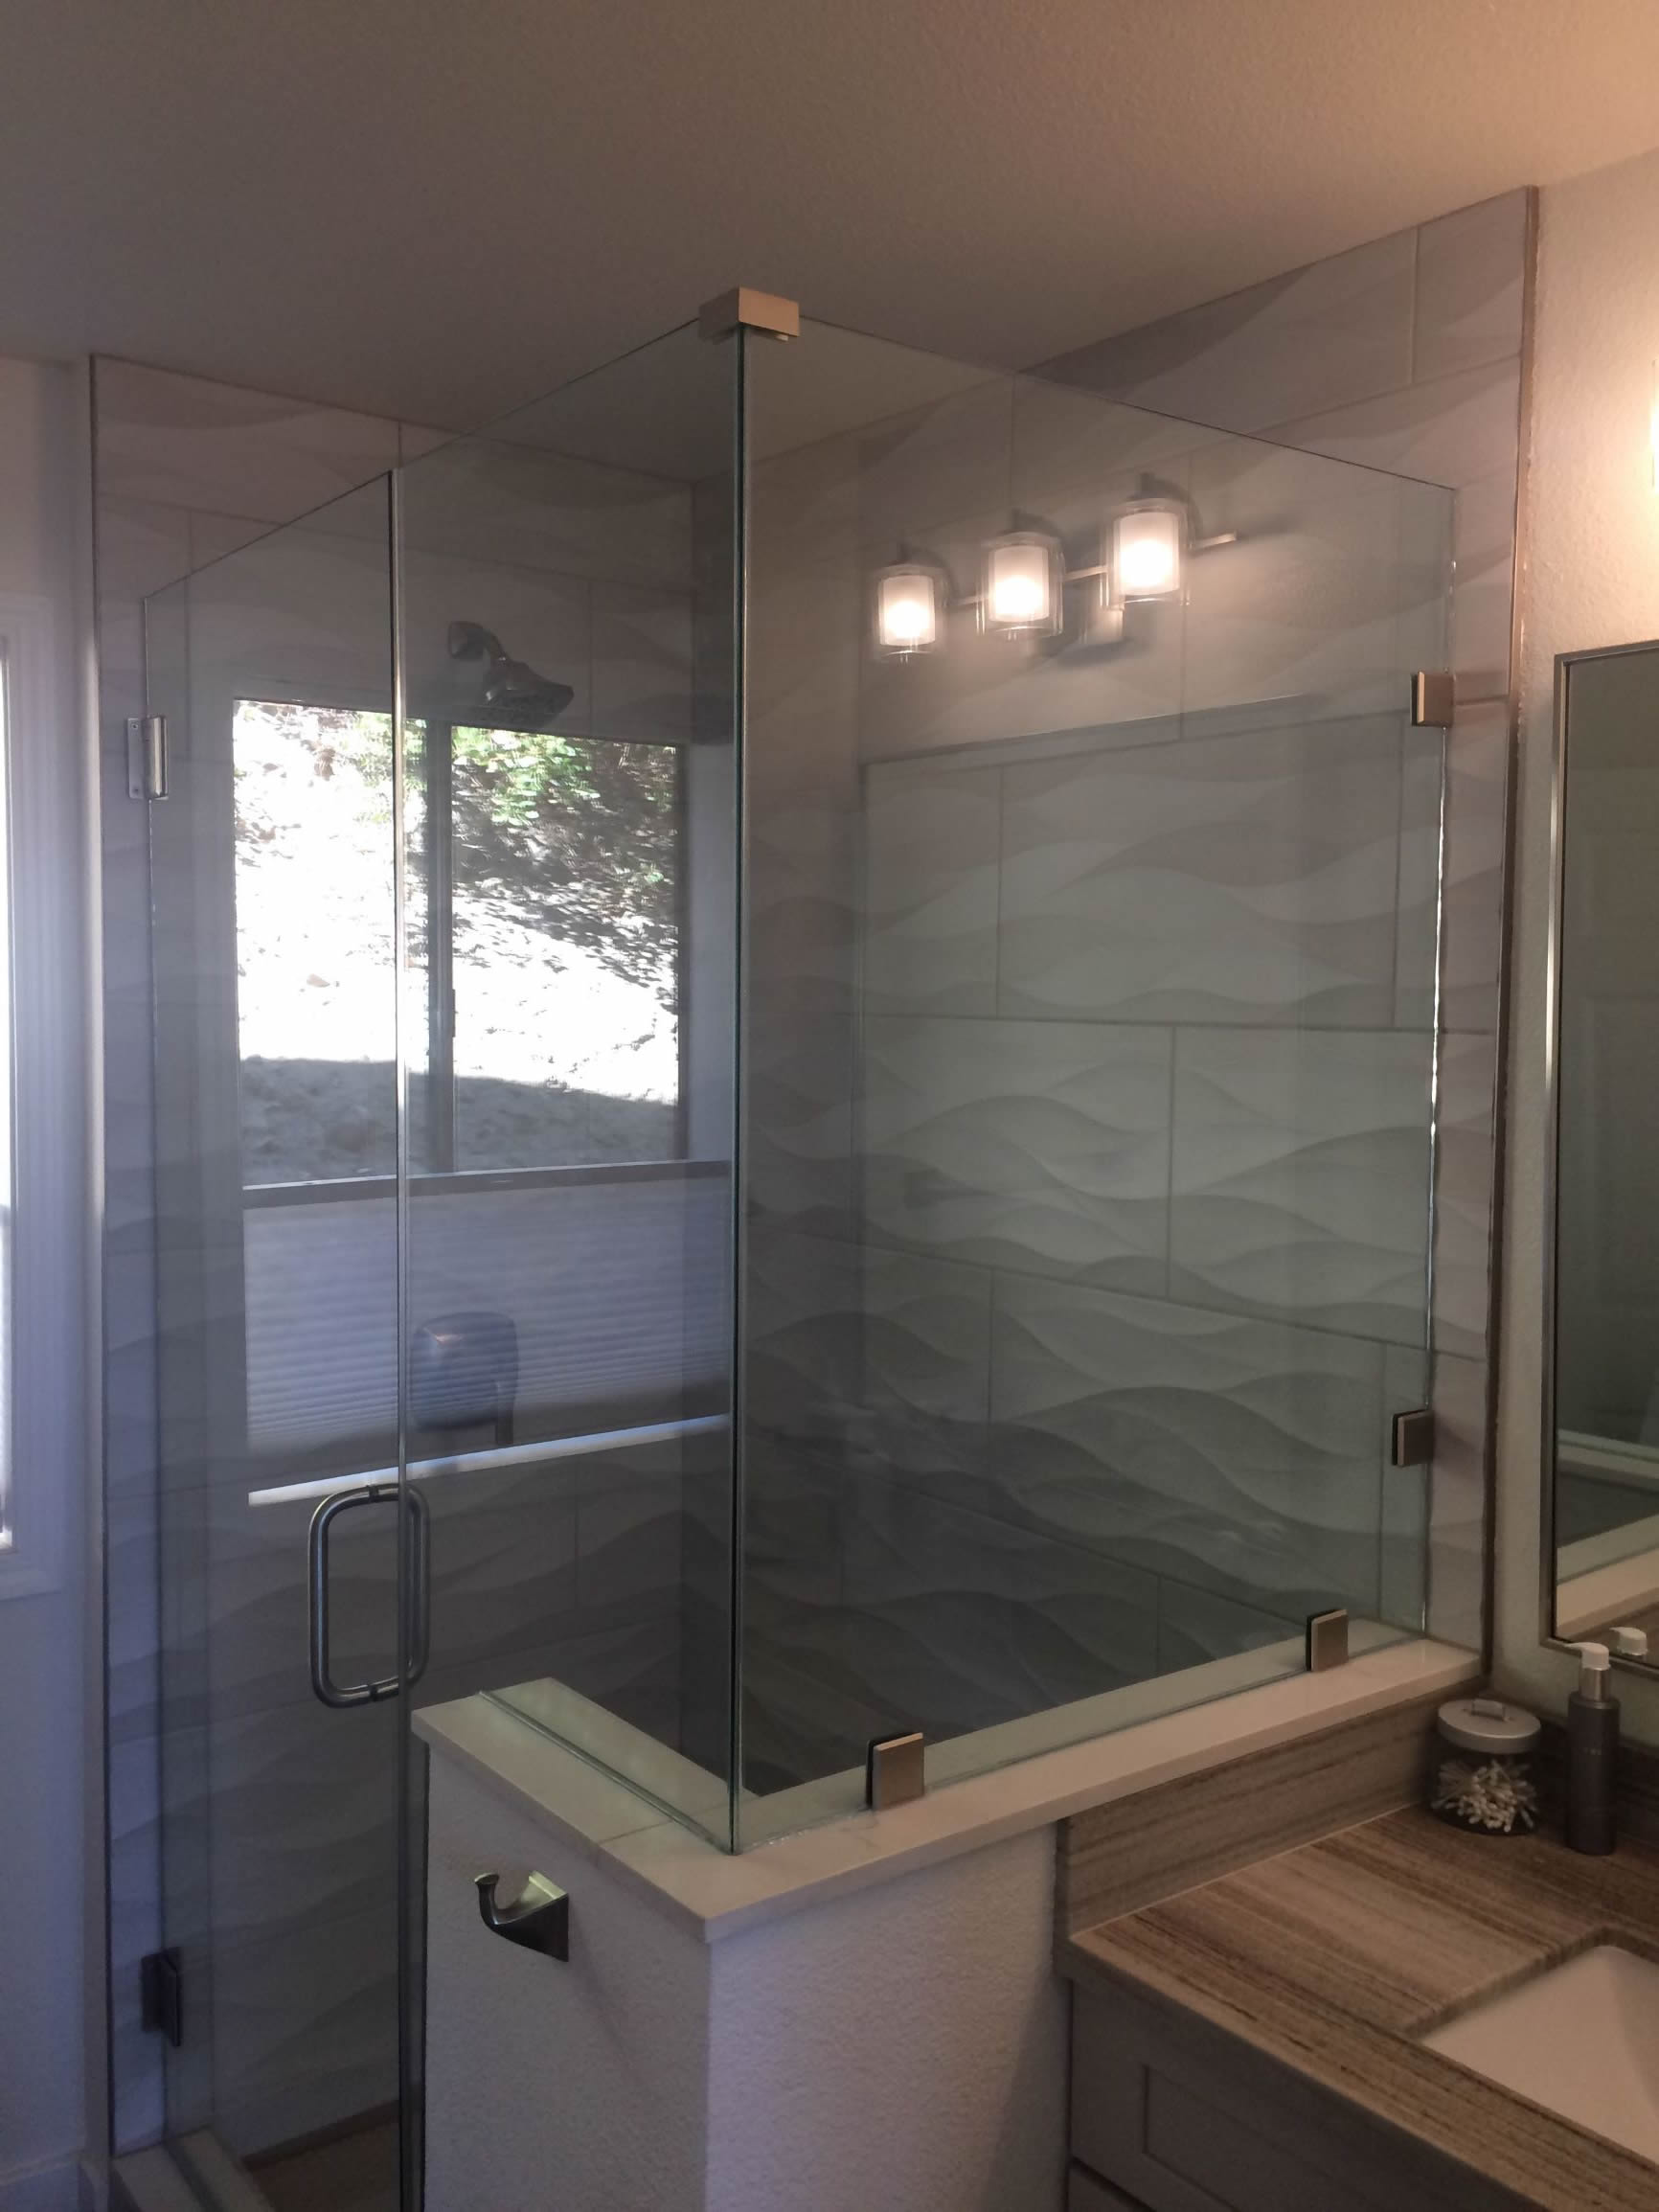 Frameless shower enclosure with brushed nickel hardware january 2019